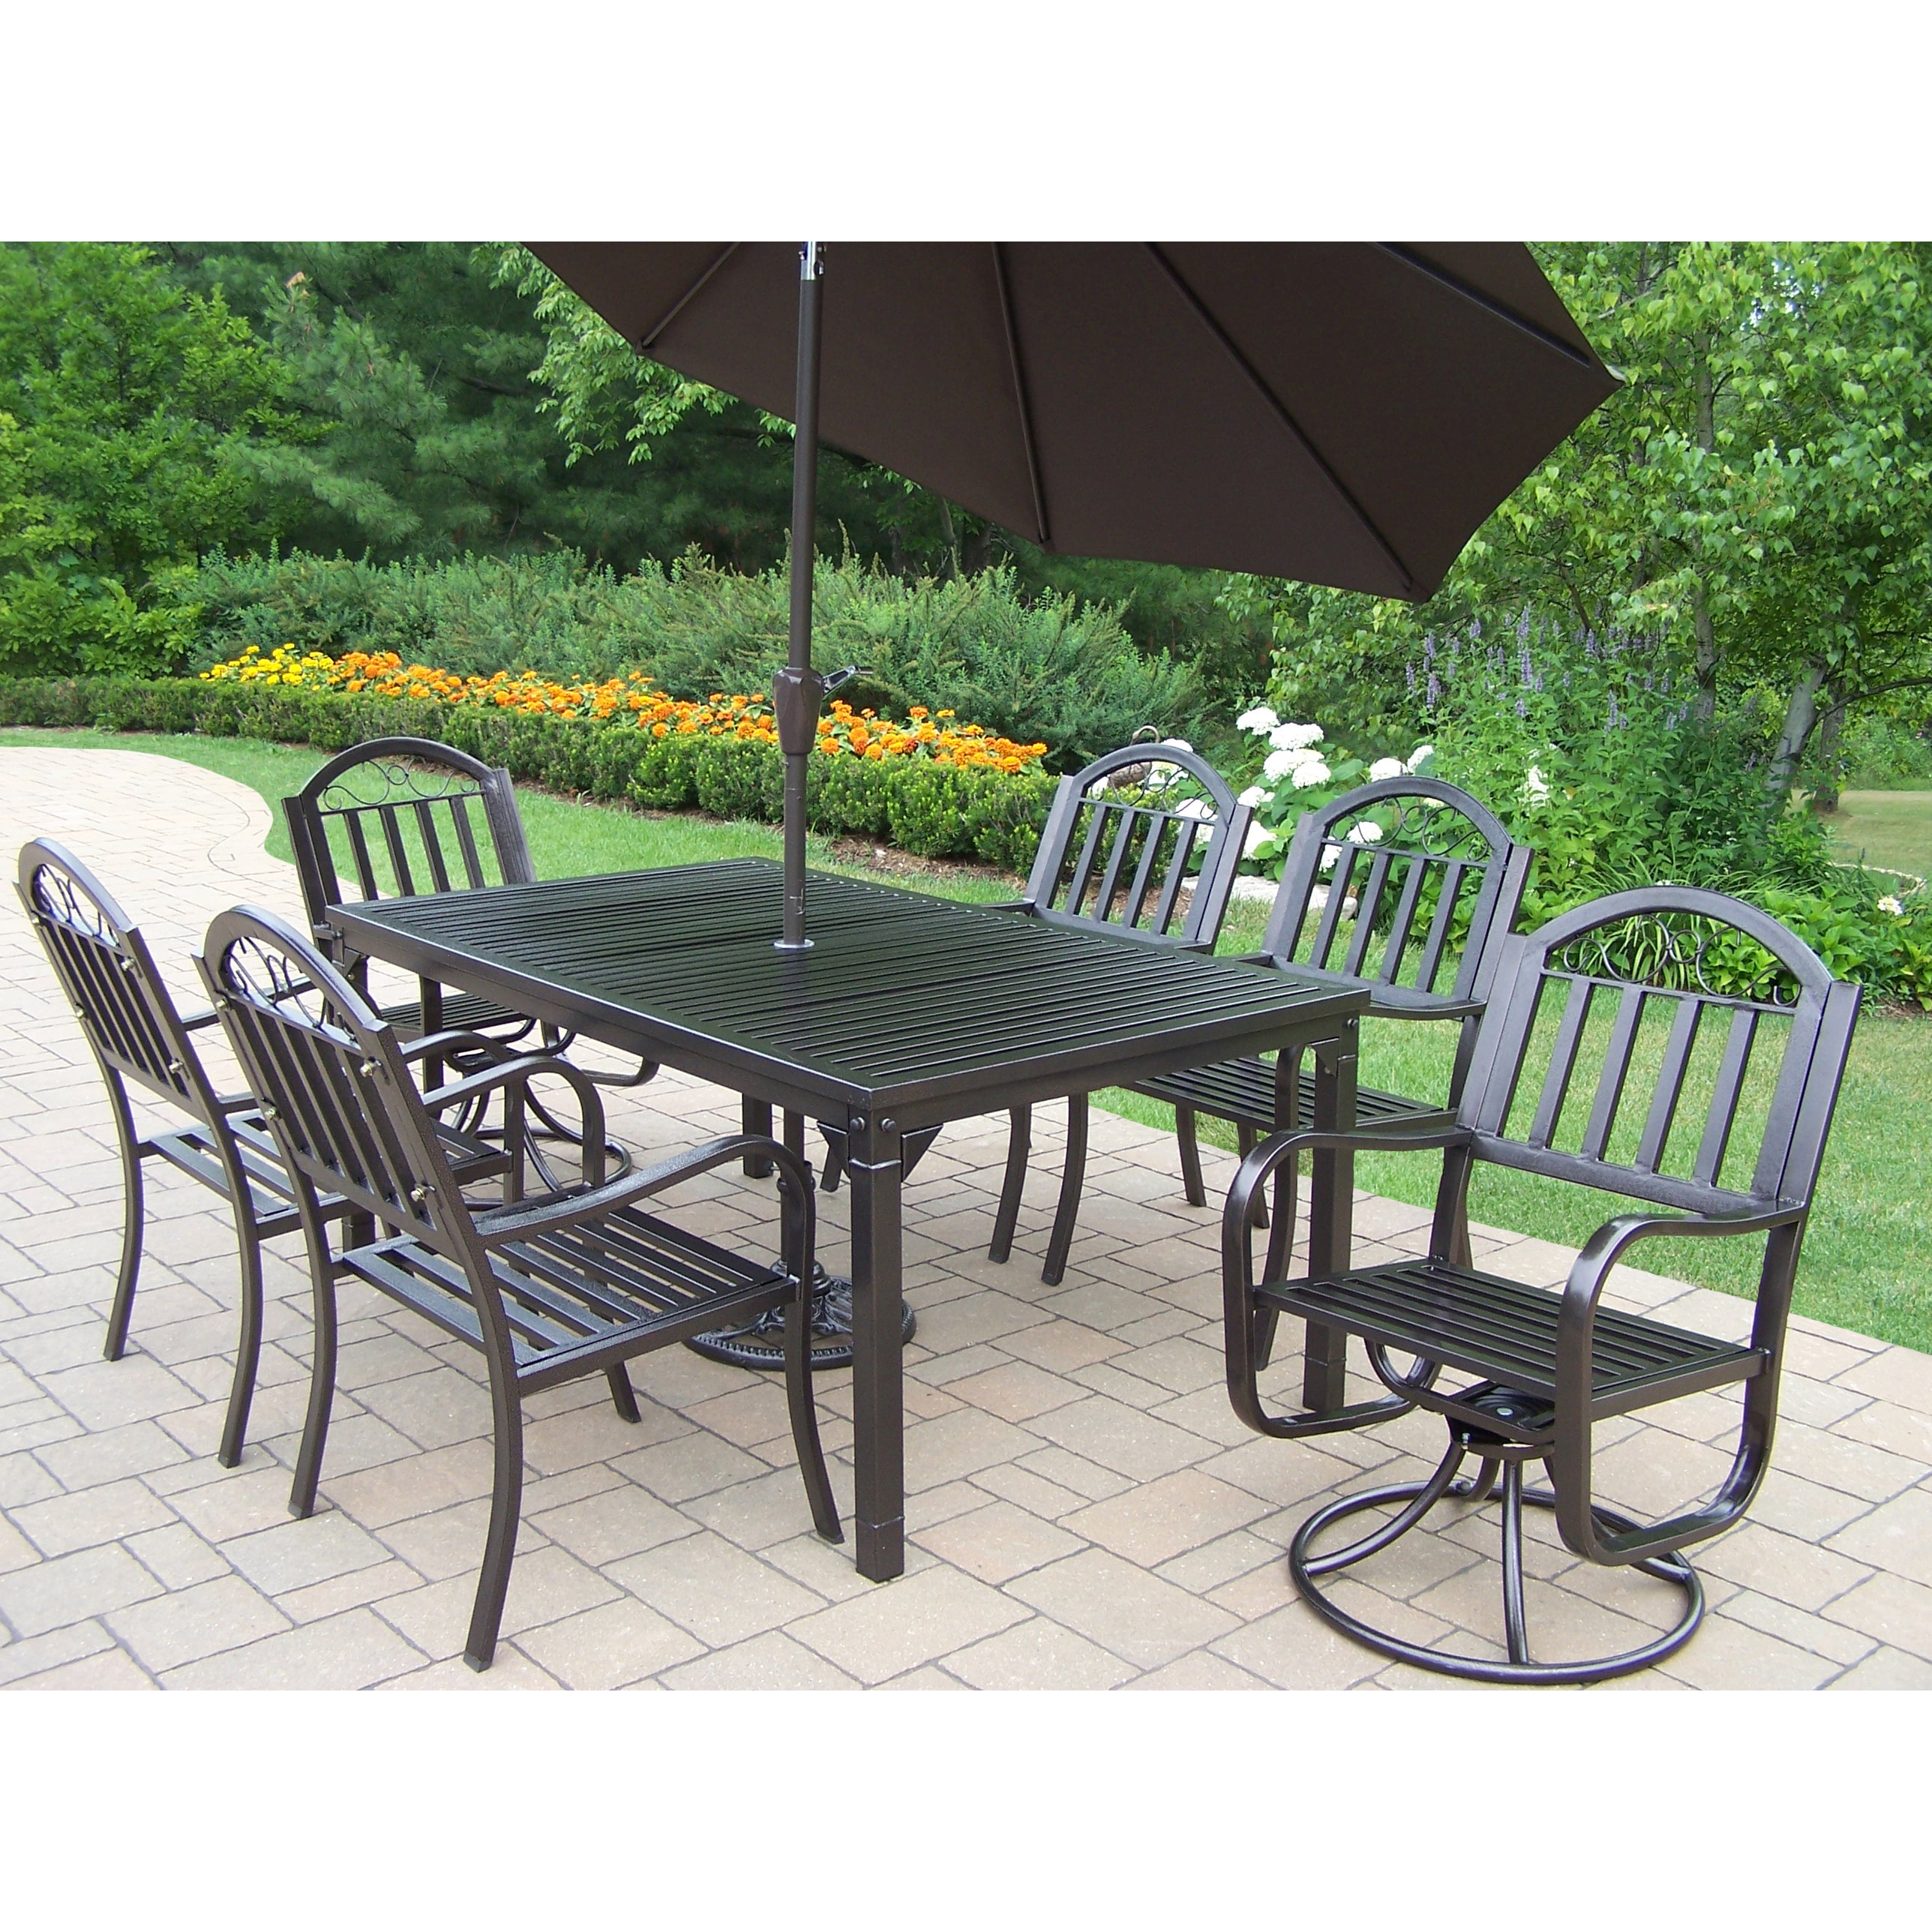 Oakland Living Corporation Hometown 9-Piece Outdoor Dining Set with Brown Umbrella